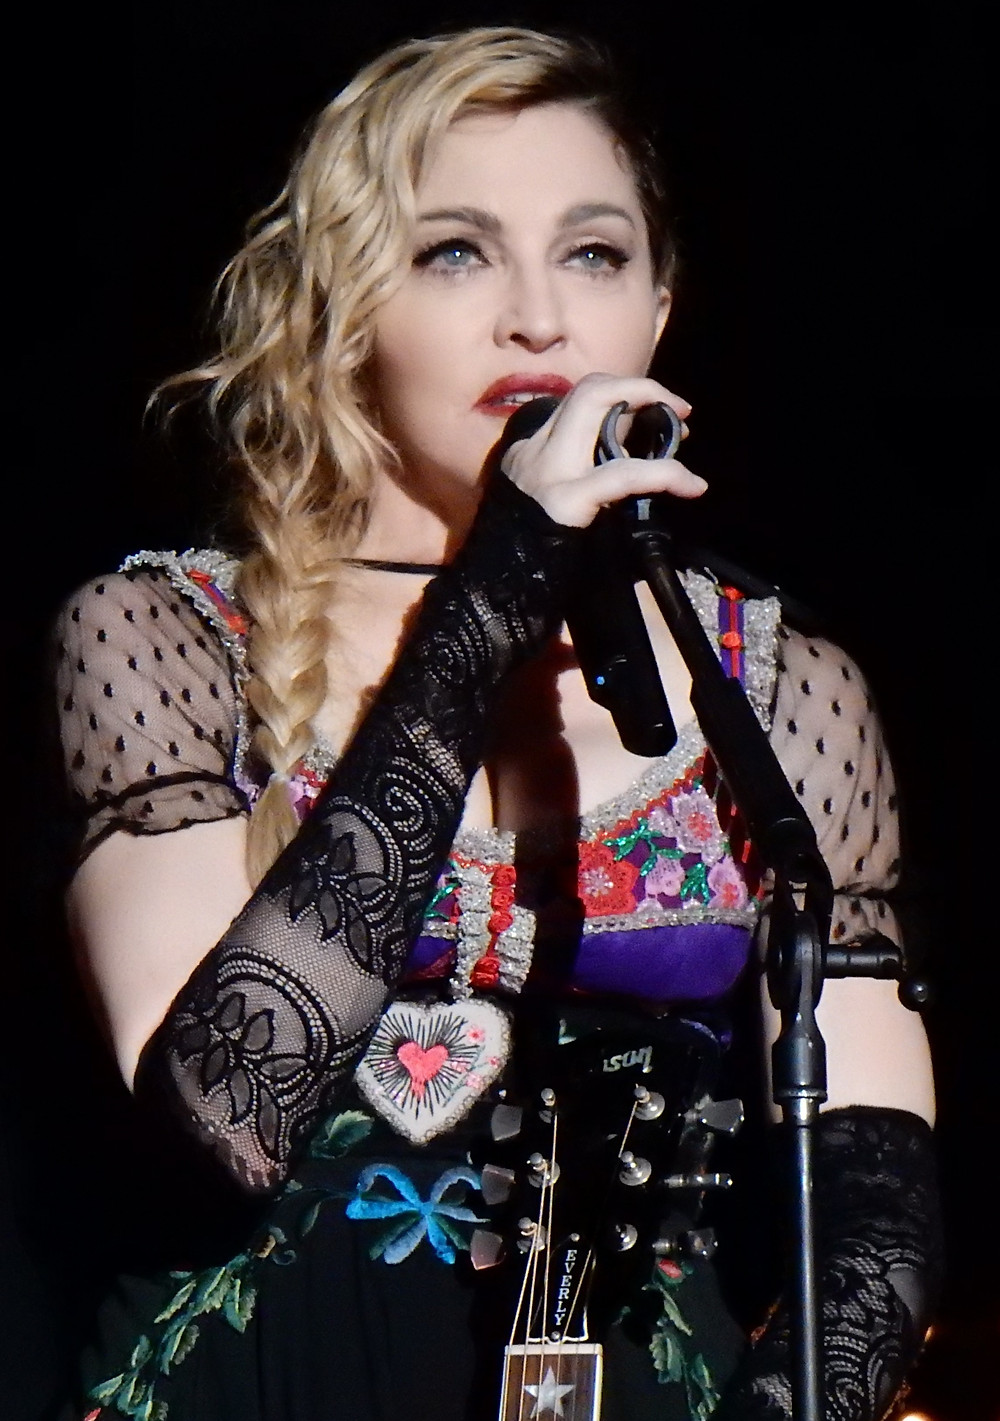 Madonna without plastic surgery